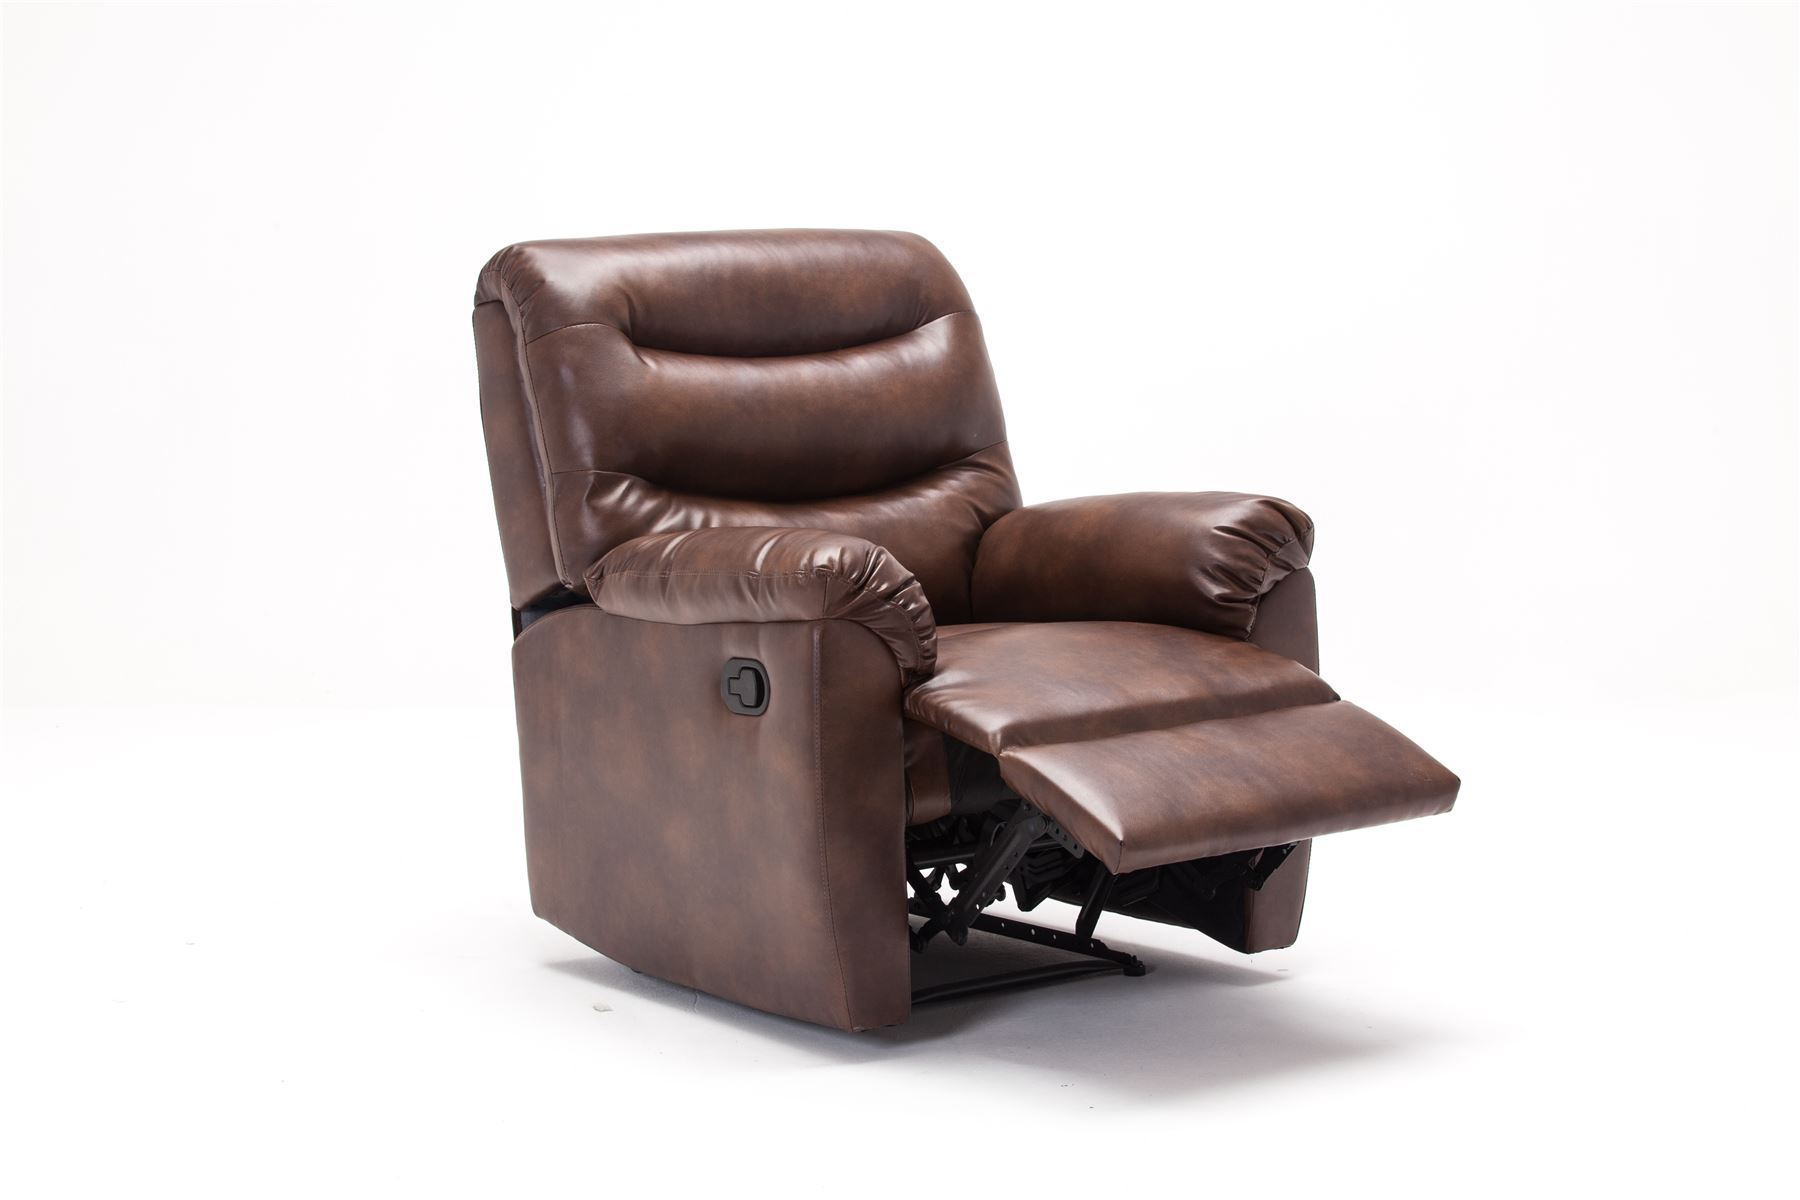 Birlea Regency Brown Bronze Faux Leather Manual Recliner Chair